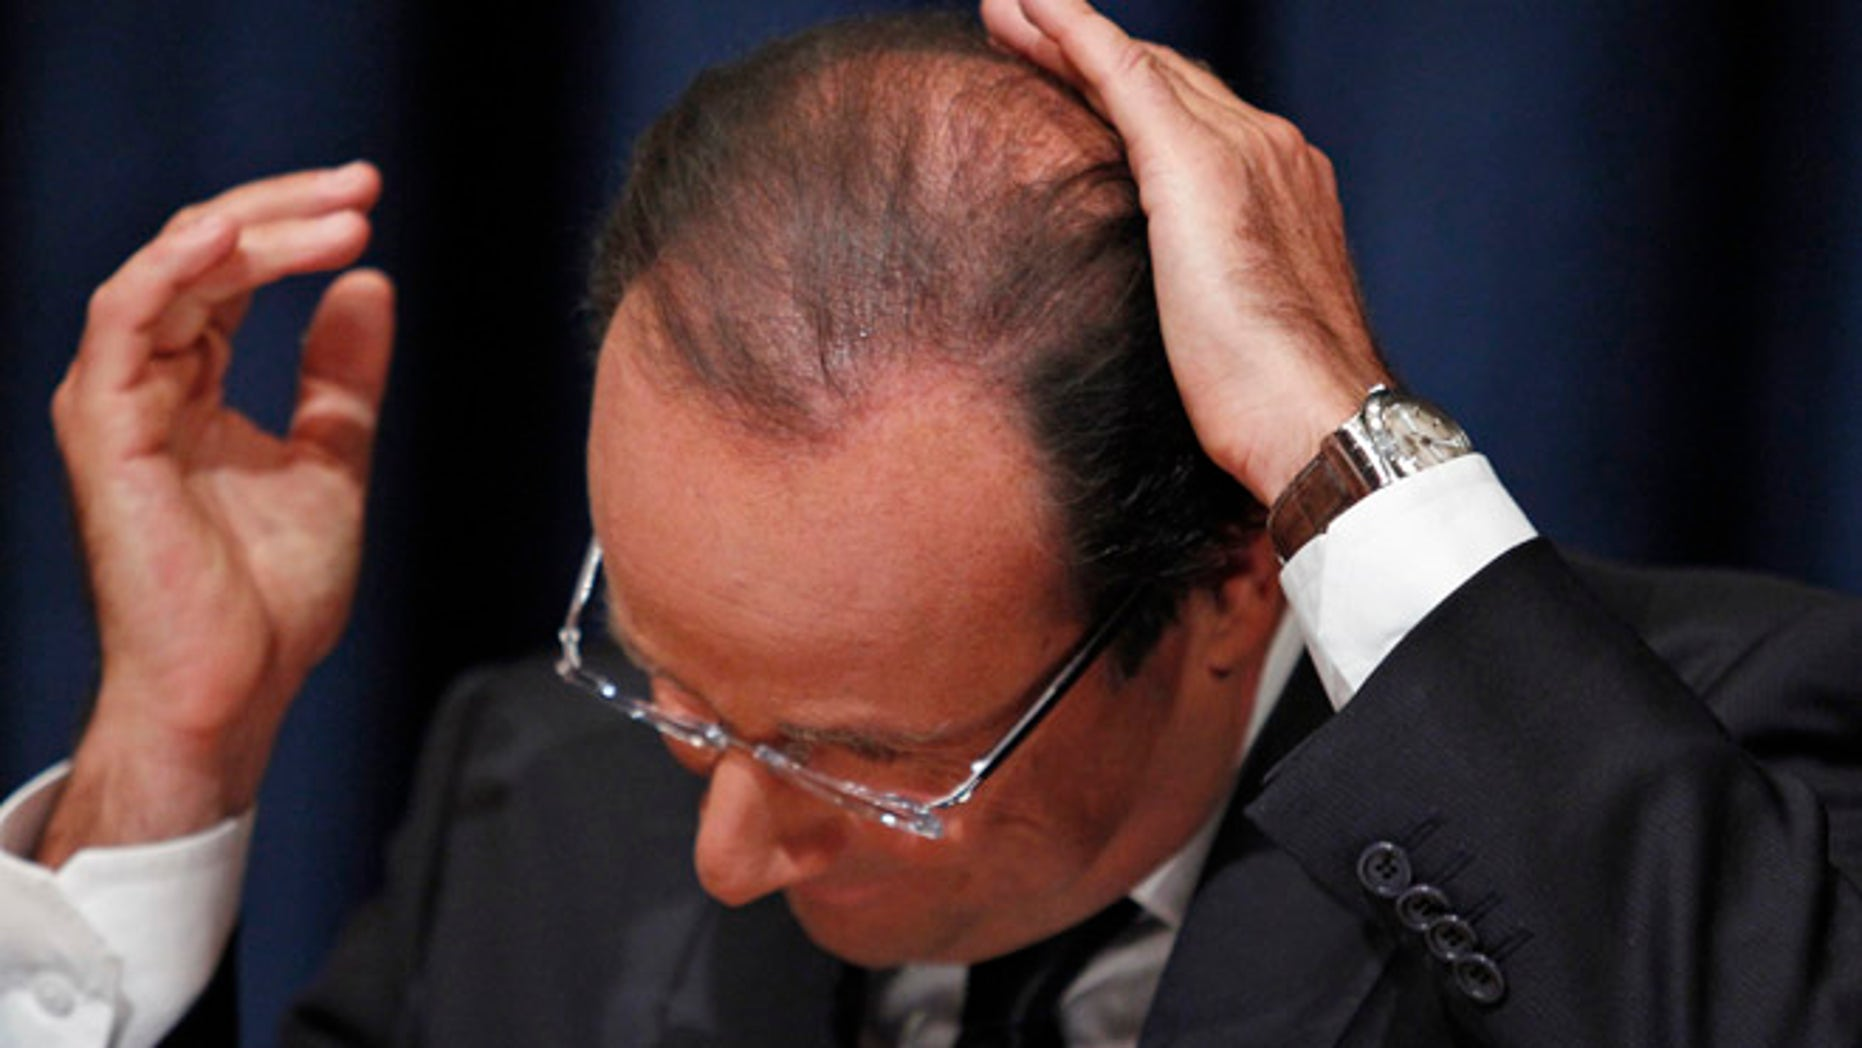 FILE: France's President Francois Hollande smoothes down his hair during a news conference in New York.